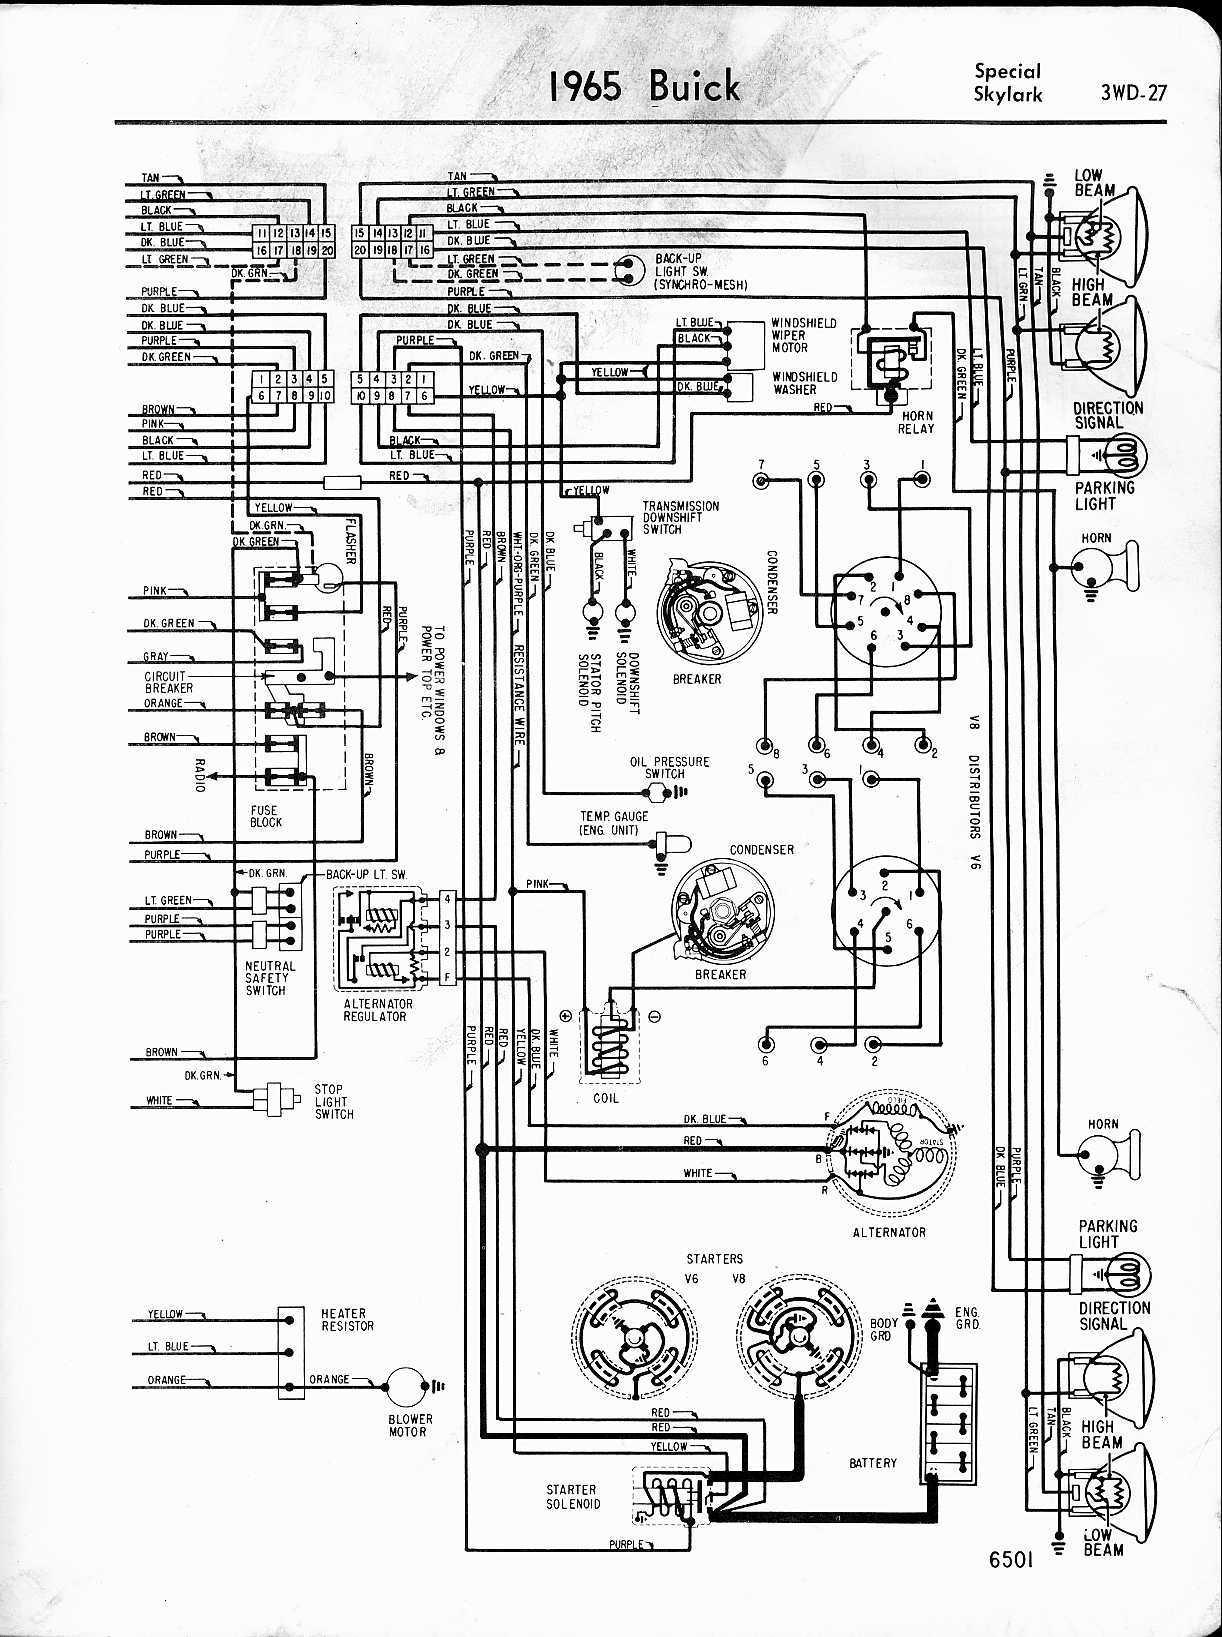 hight resolution of 1972 buick riviera wiring diagram wiring diagram third level rh 19 20 jacobwinterstein com 1996 buick lesabre wiring diagram 1998 buick lesabre wiring